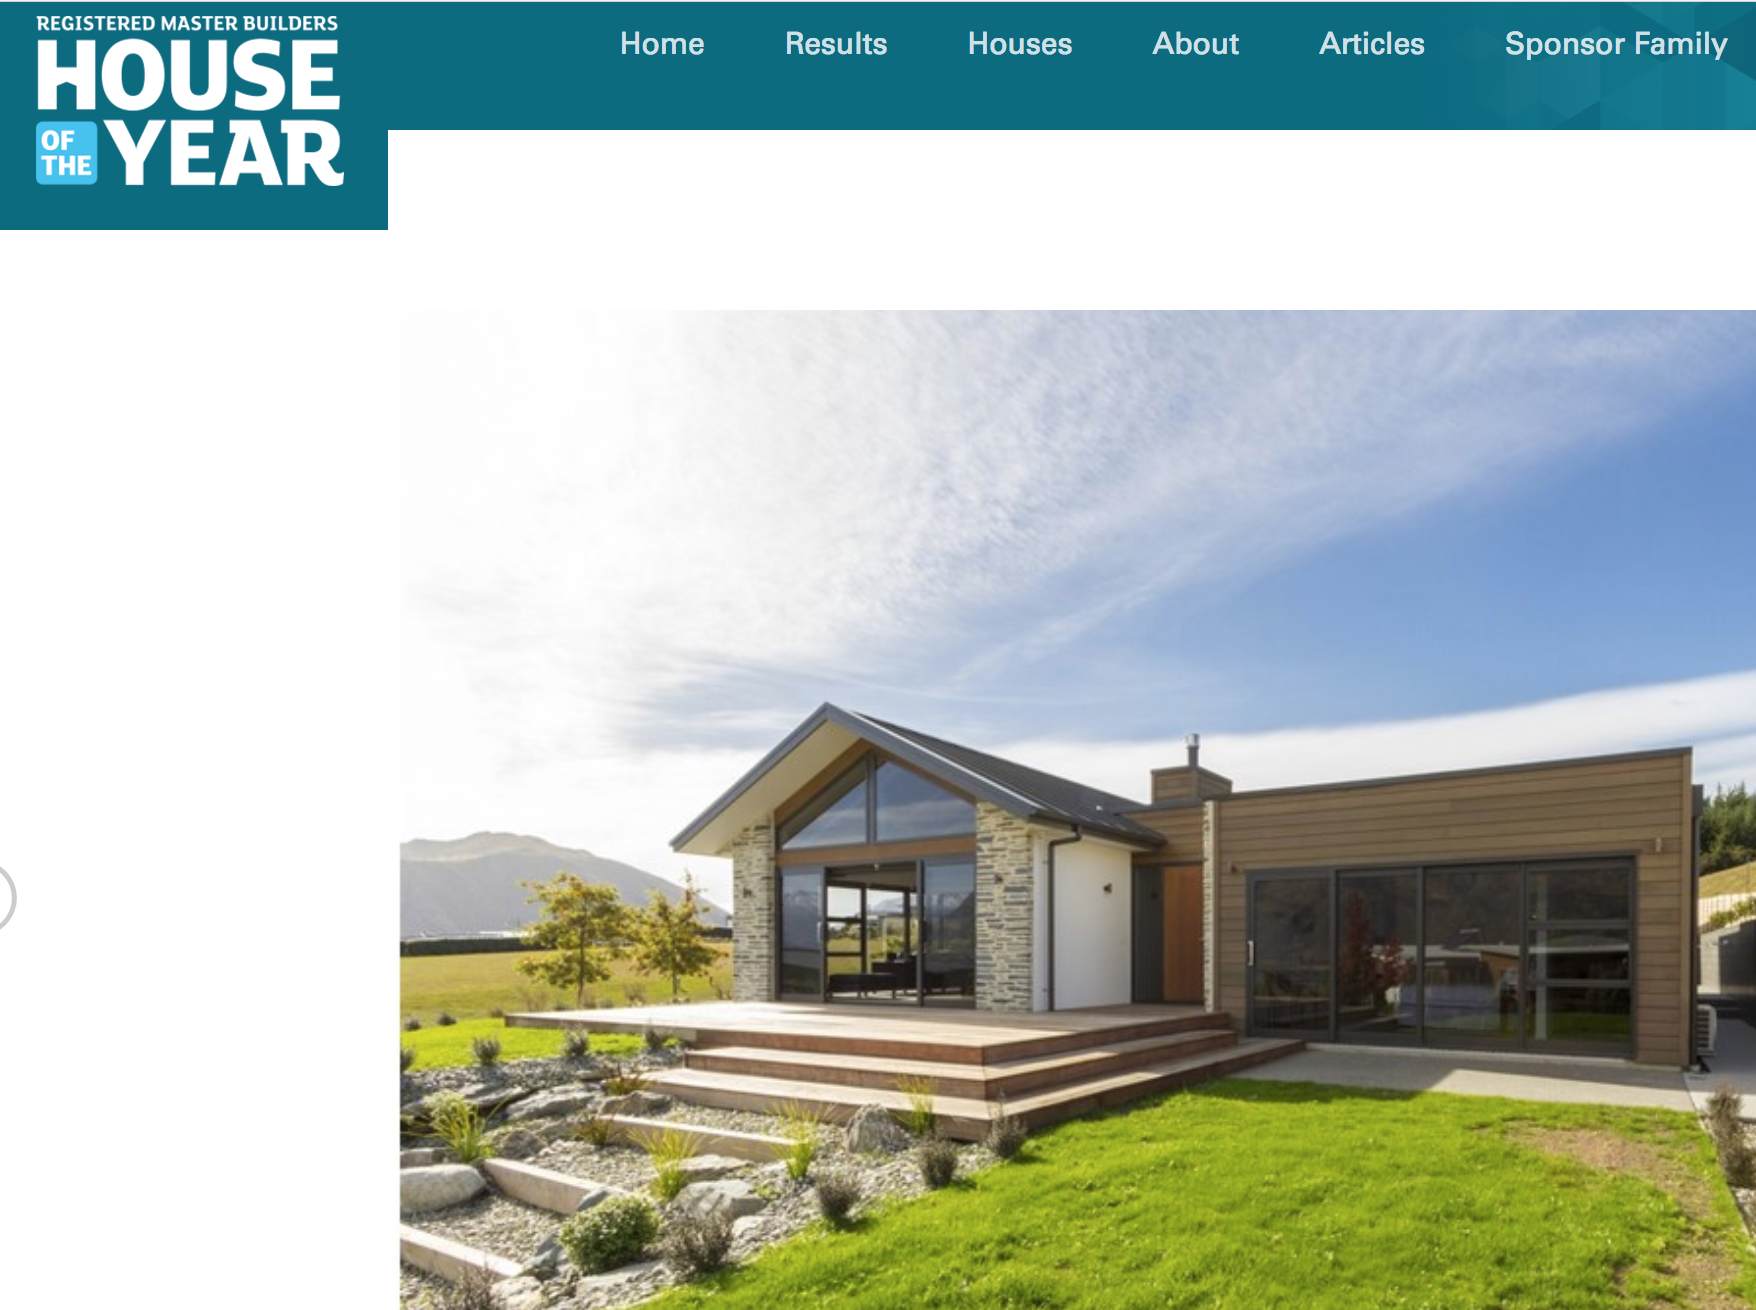 Registered Master Builders: House of the Year